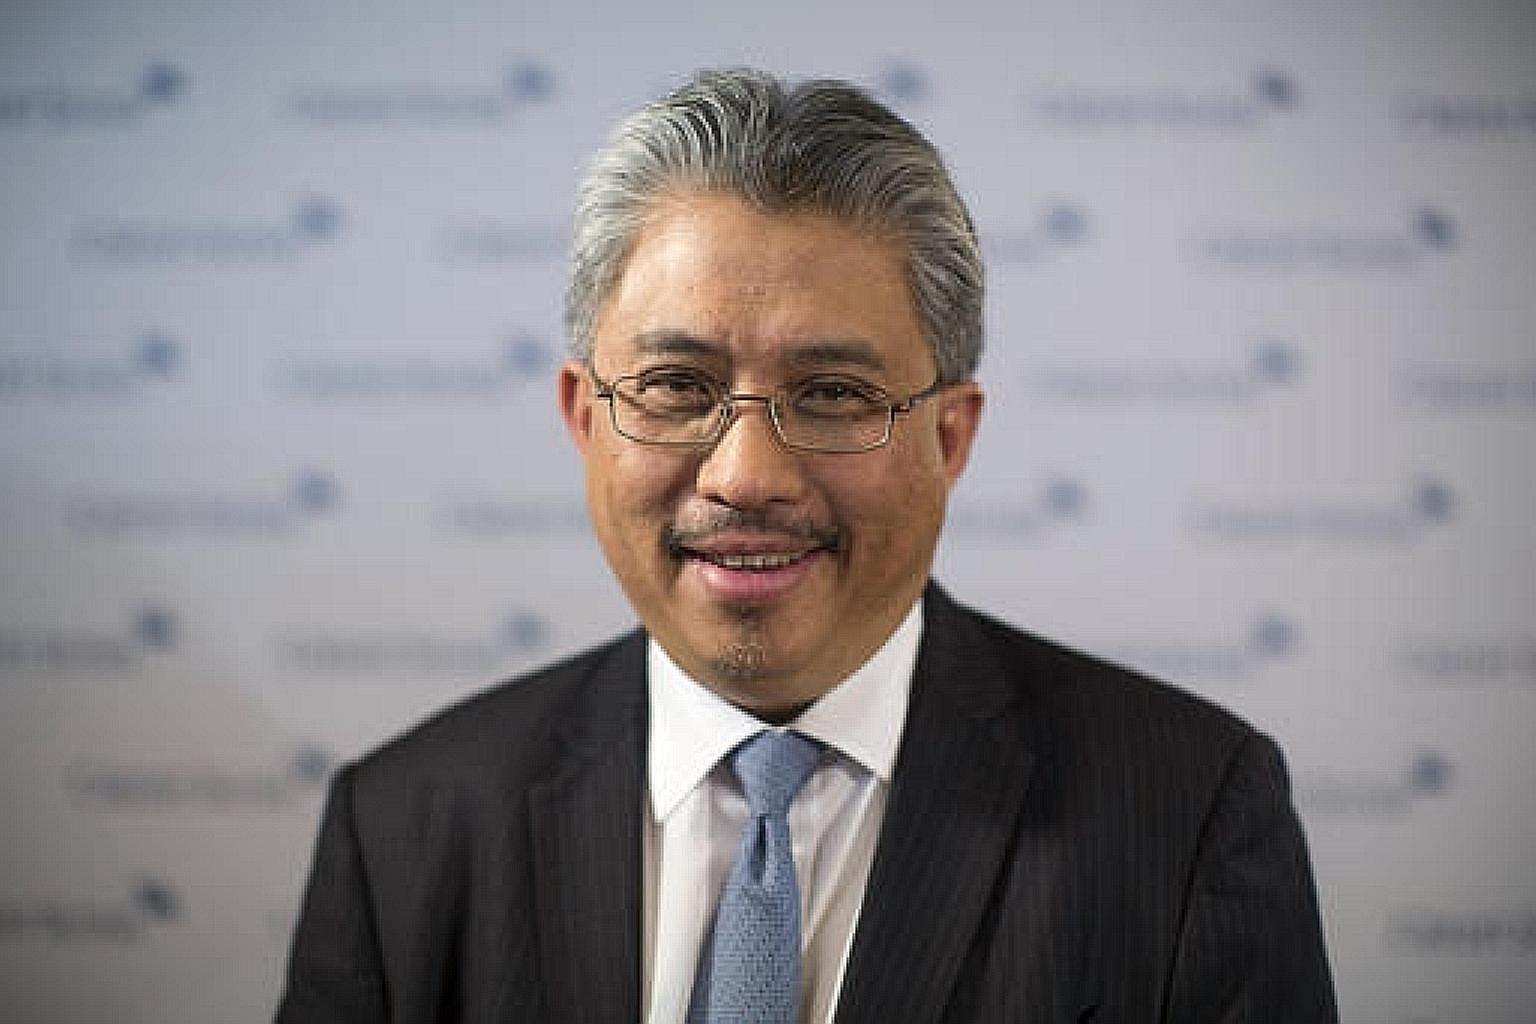 Under Mr Azman Mokhtar, Khazanah has returned a total of RM9 billion in dividends, or an average annual return of below 1 per cent of the fund size.